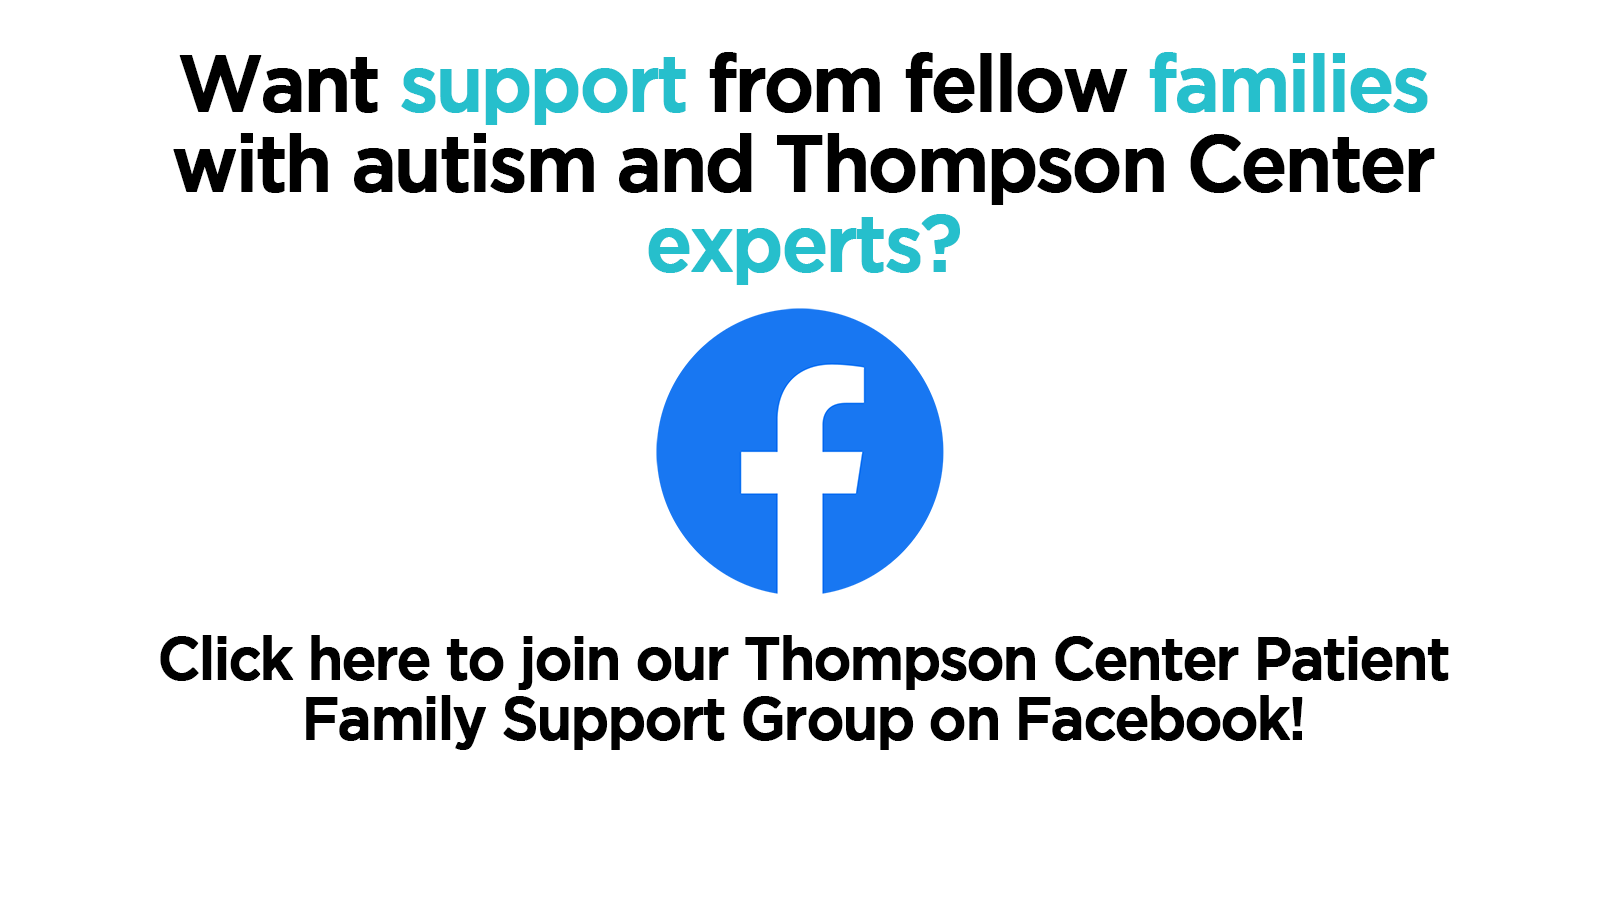 want support from fellow families with autism and thompson center experts? click here to join our thompson center patient family support group on facebook!